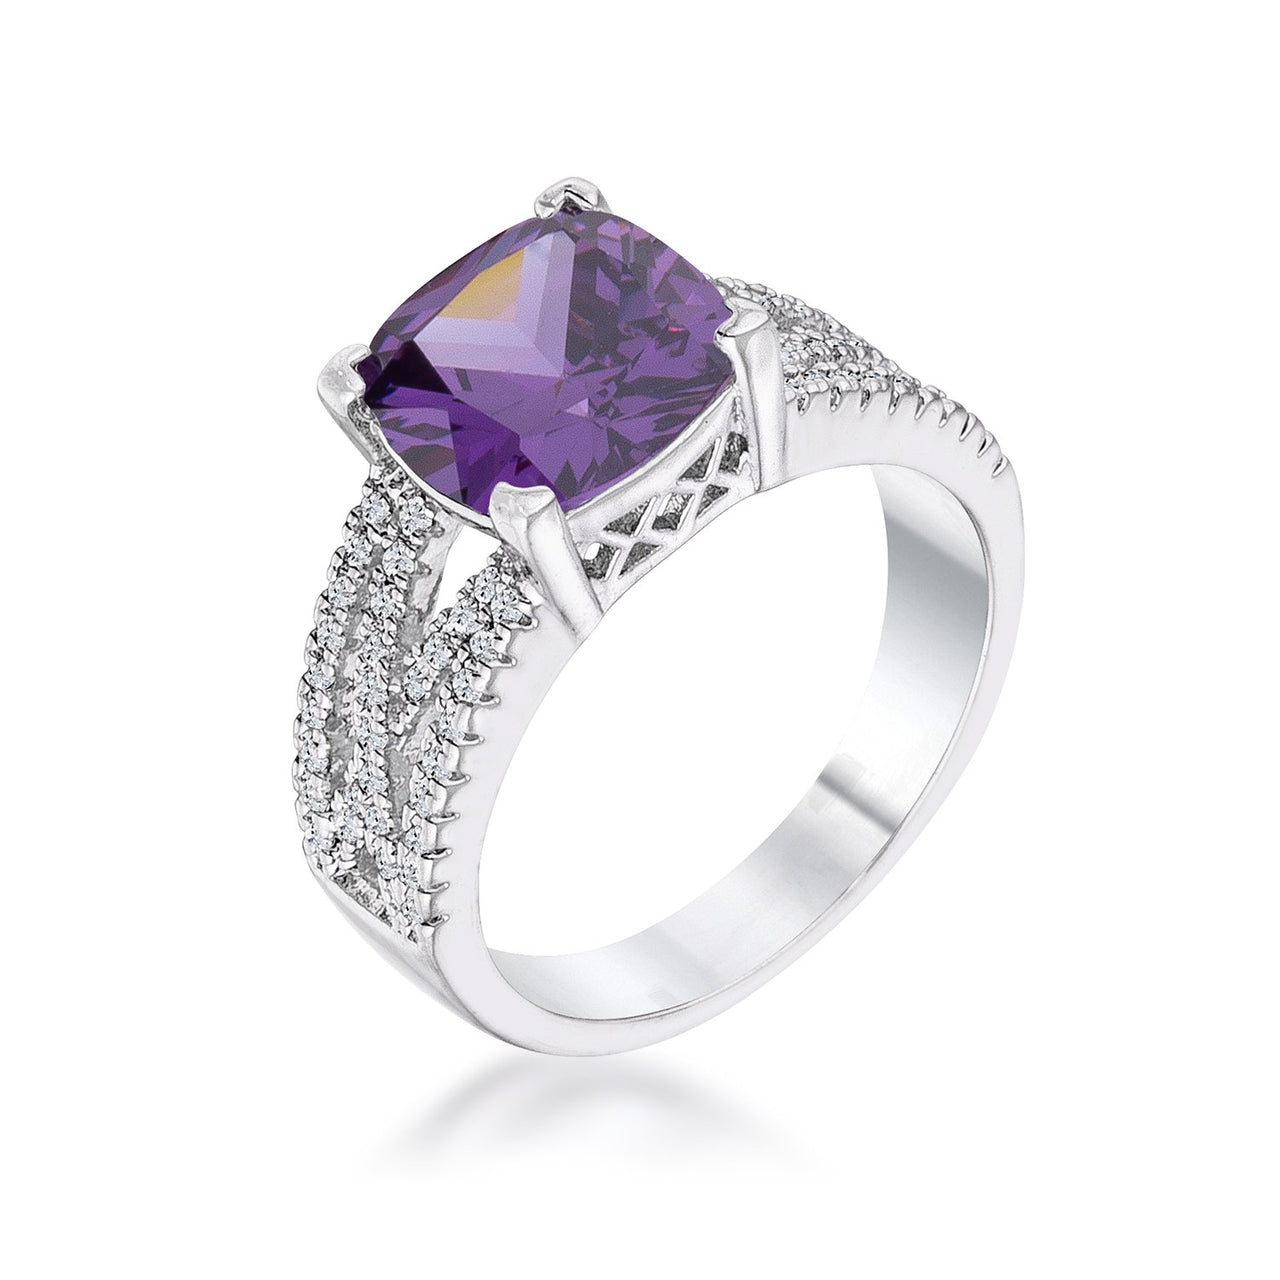 3Ct Elegant Silvertone Criss-Cross Amethyst Purple CZ Engagement Ring - Rings - KA Designs Online